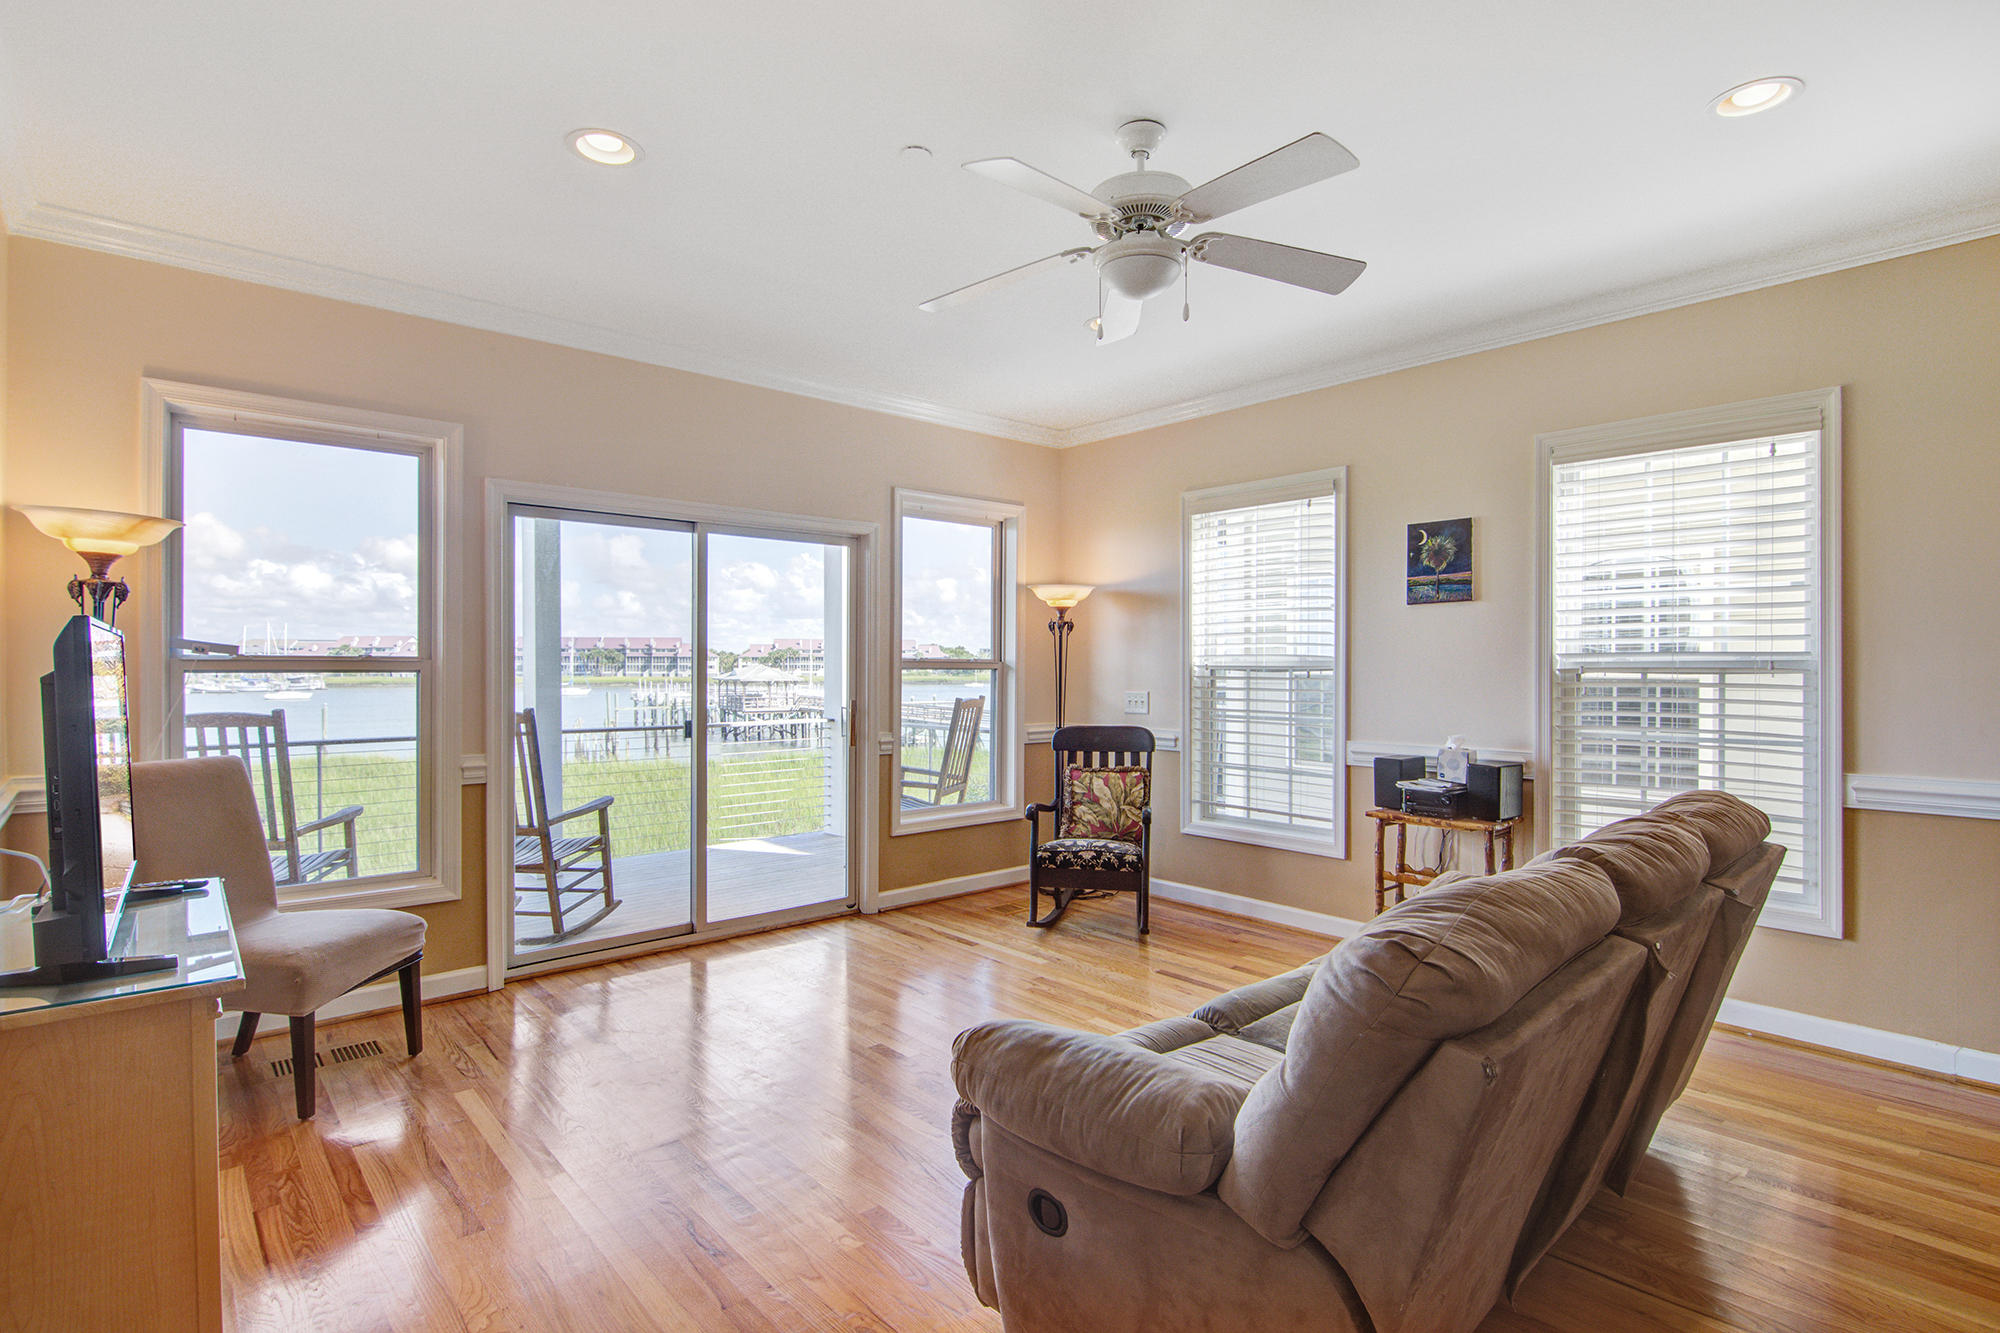 Waters Edge Homes For Sale - 119 2nd, Folly Beach, SC - 12